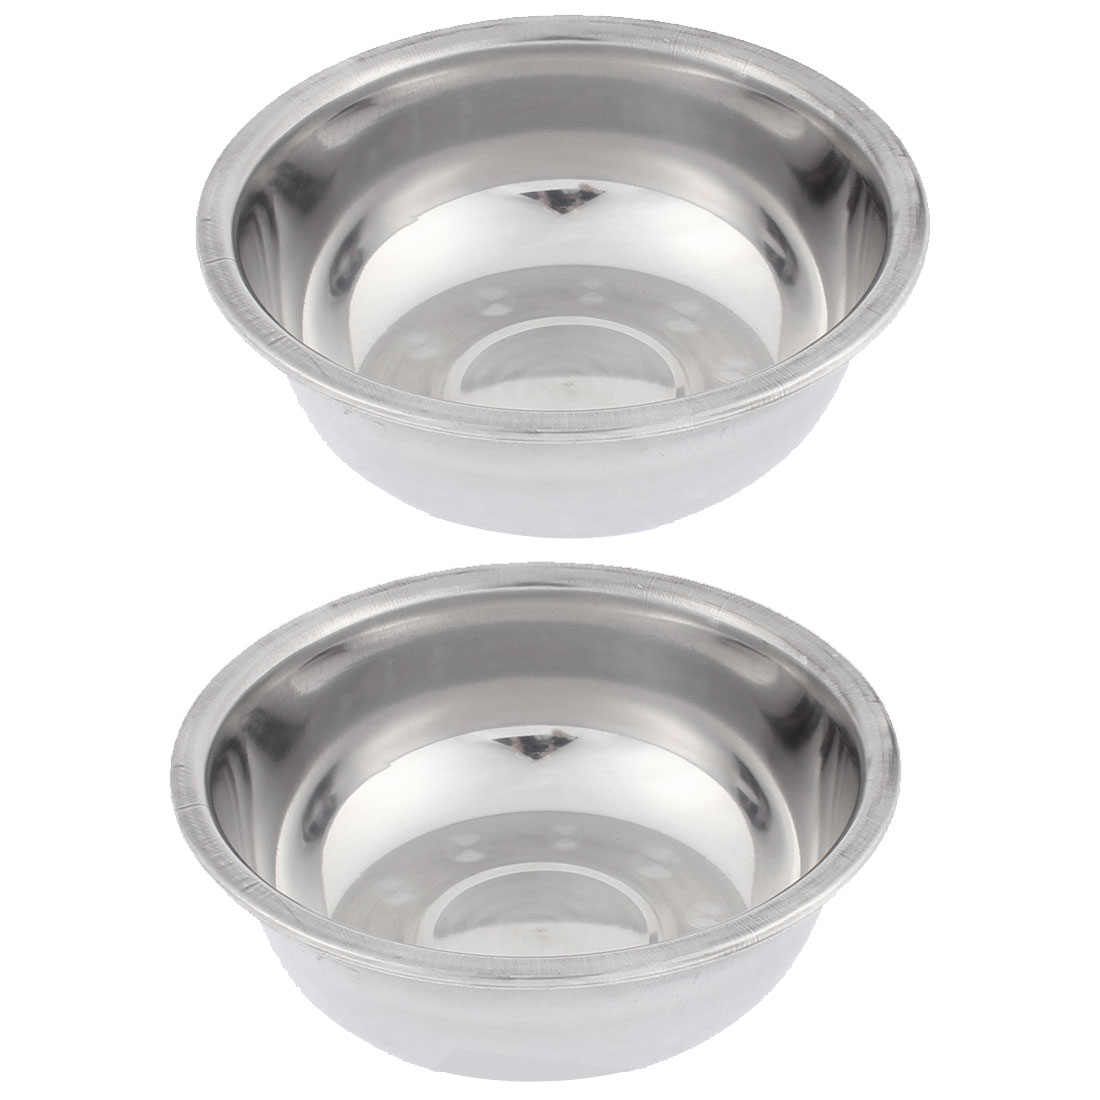 Round Shaped Soup Rice Food Bowl 17cm Dia 2Pcs